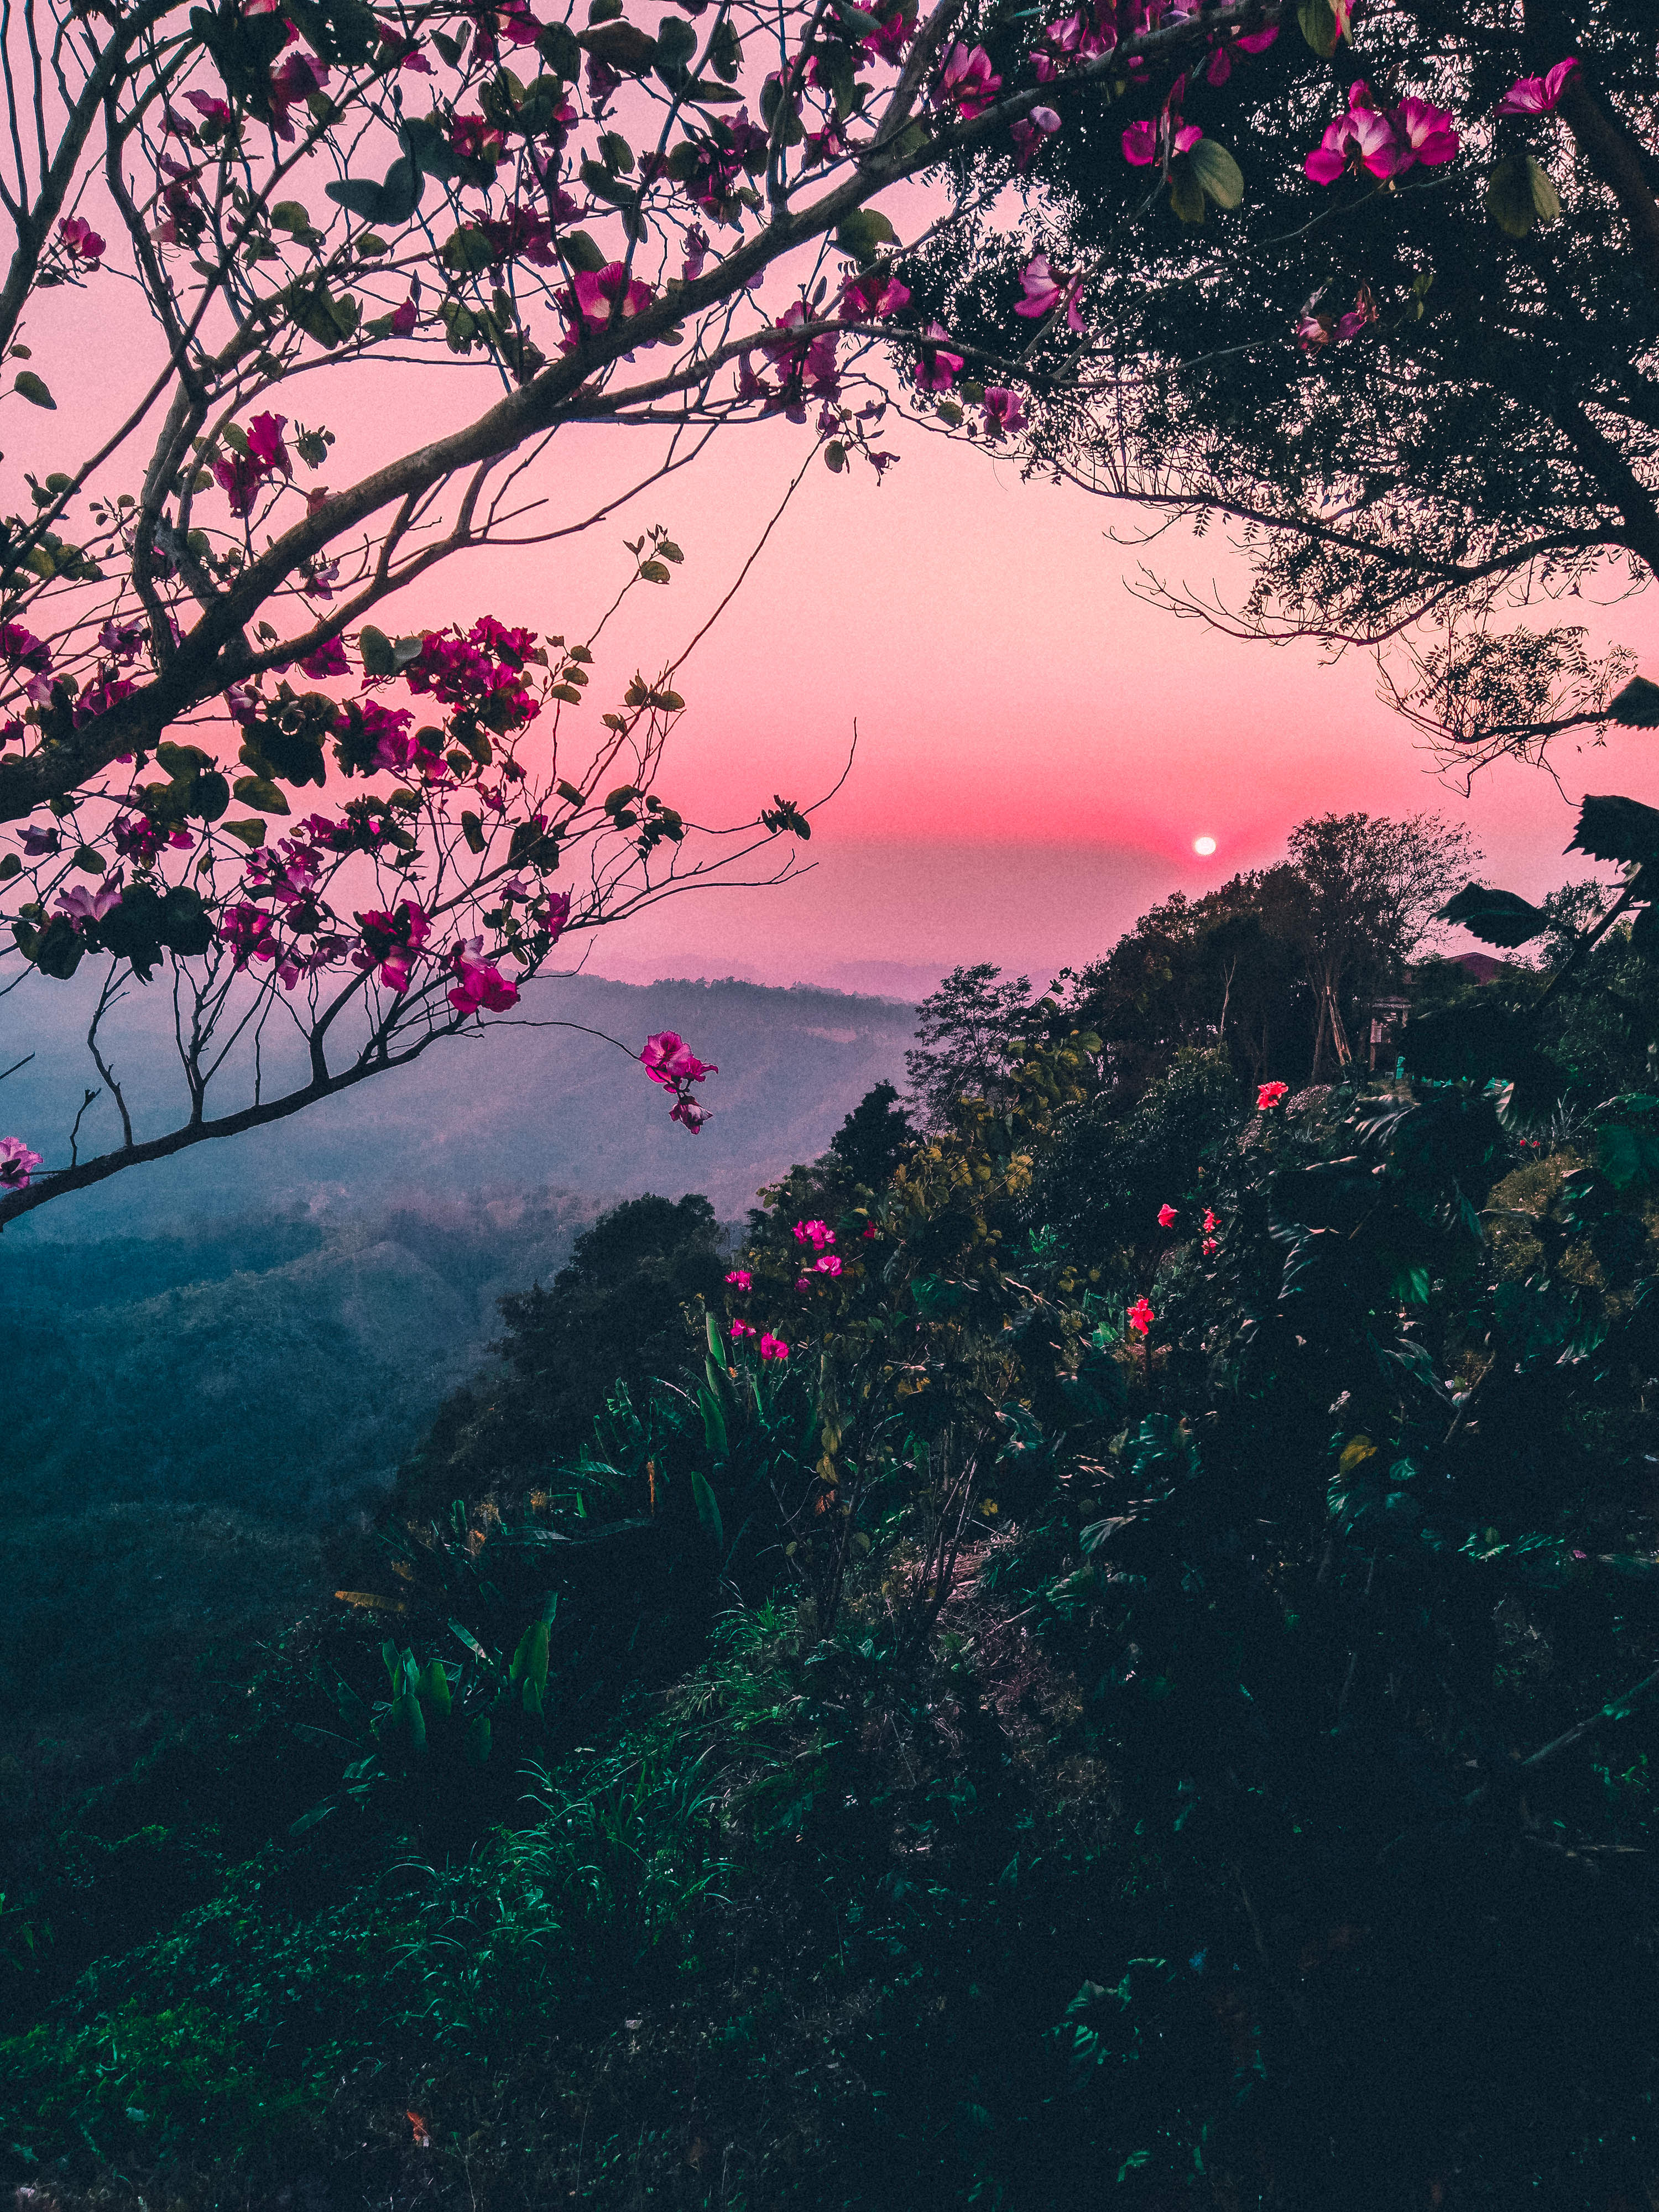 Pink Skies With Trees And Flowers Image Free Stock Photo